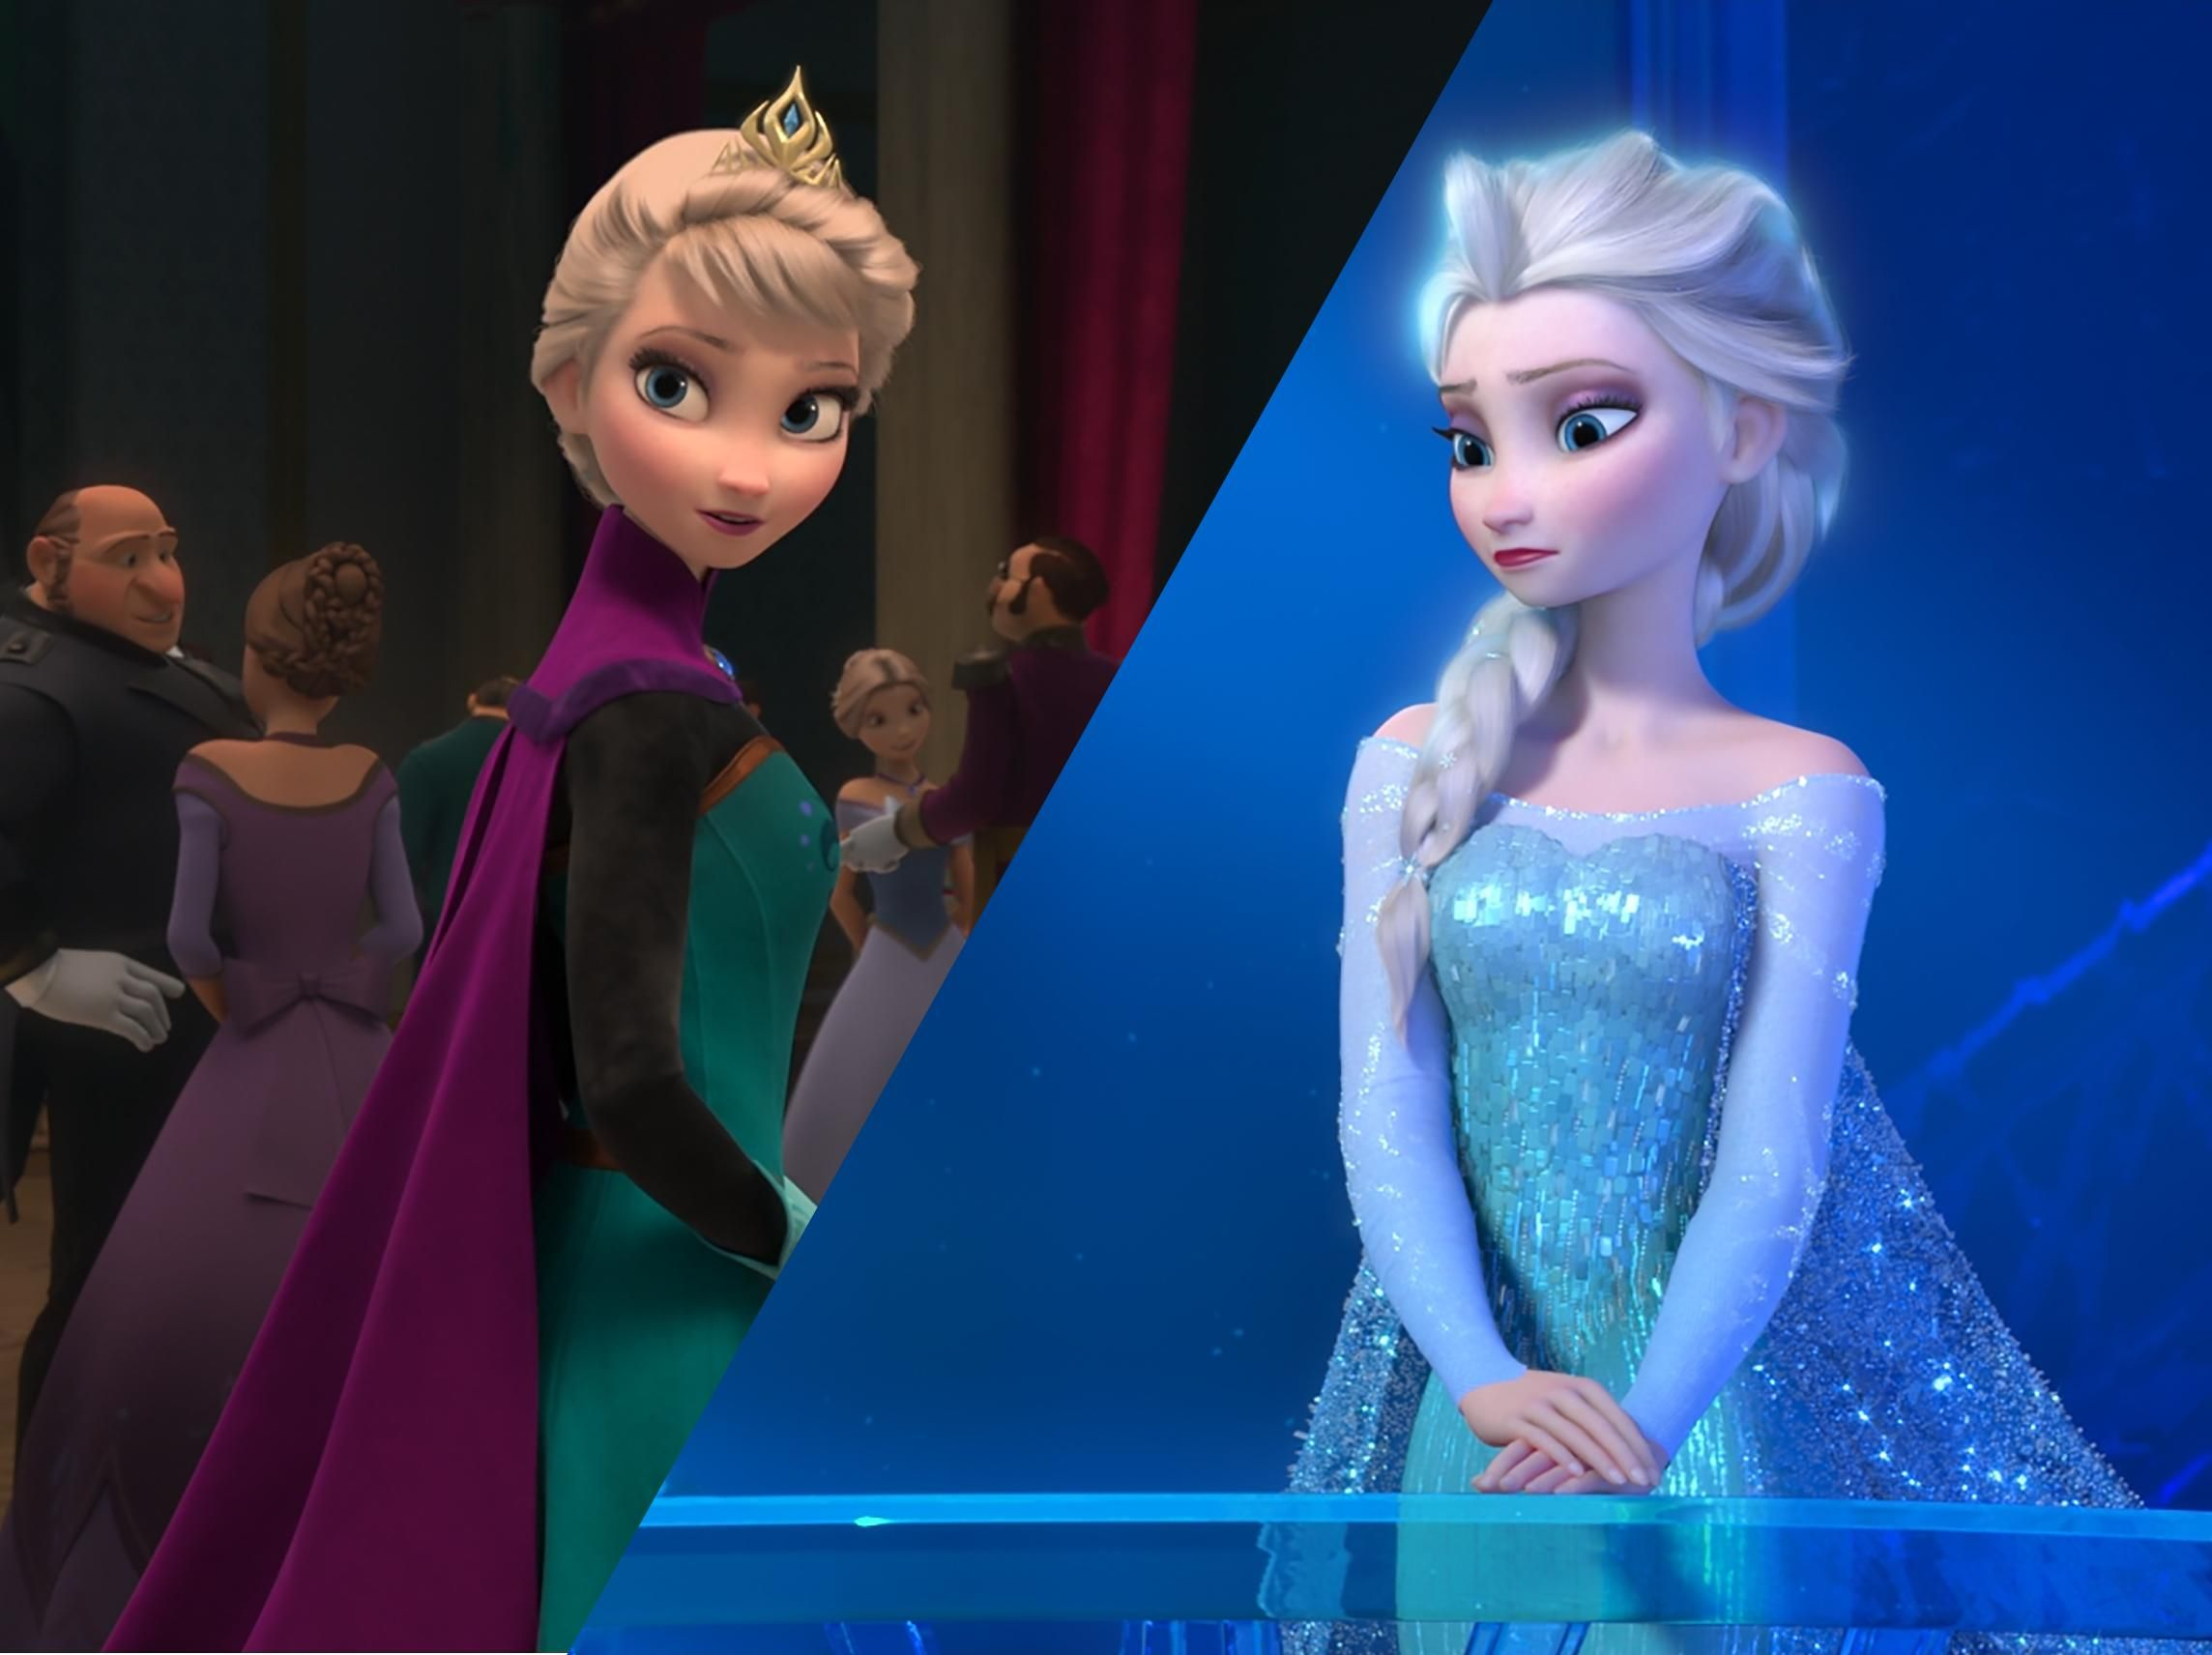 Hair Down Coronation Dress Elsa At Her Ice Palace From R Frozen R Queenelsa Frozen Disney Movie Frozen Fever Elsa Disney Princess Frozen